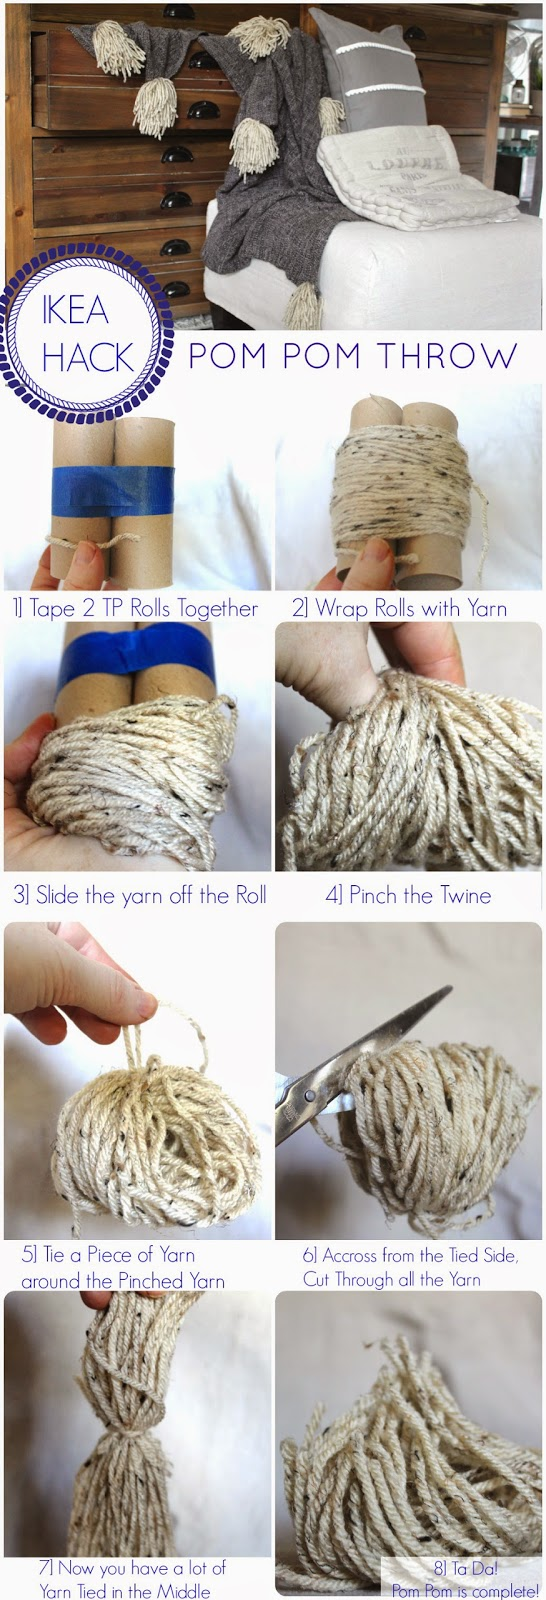 How to- Create Pom Poms